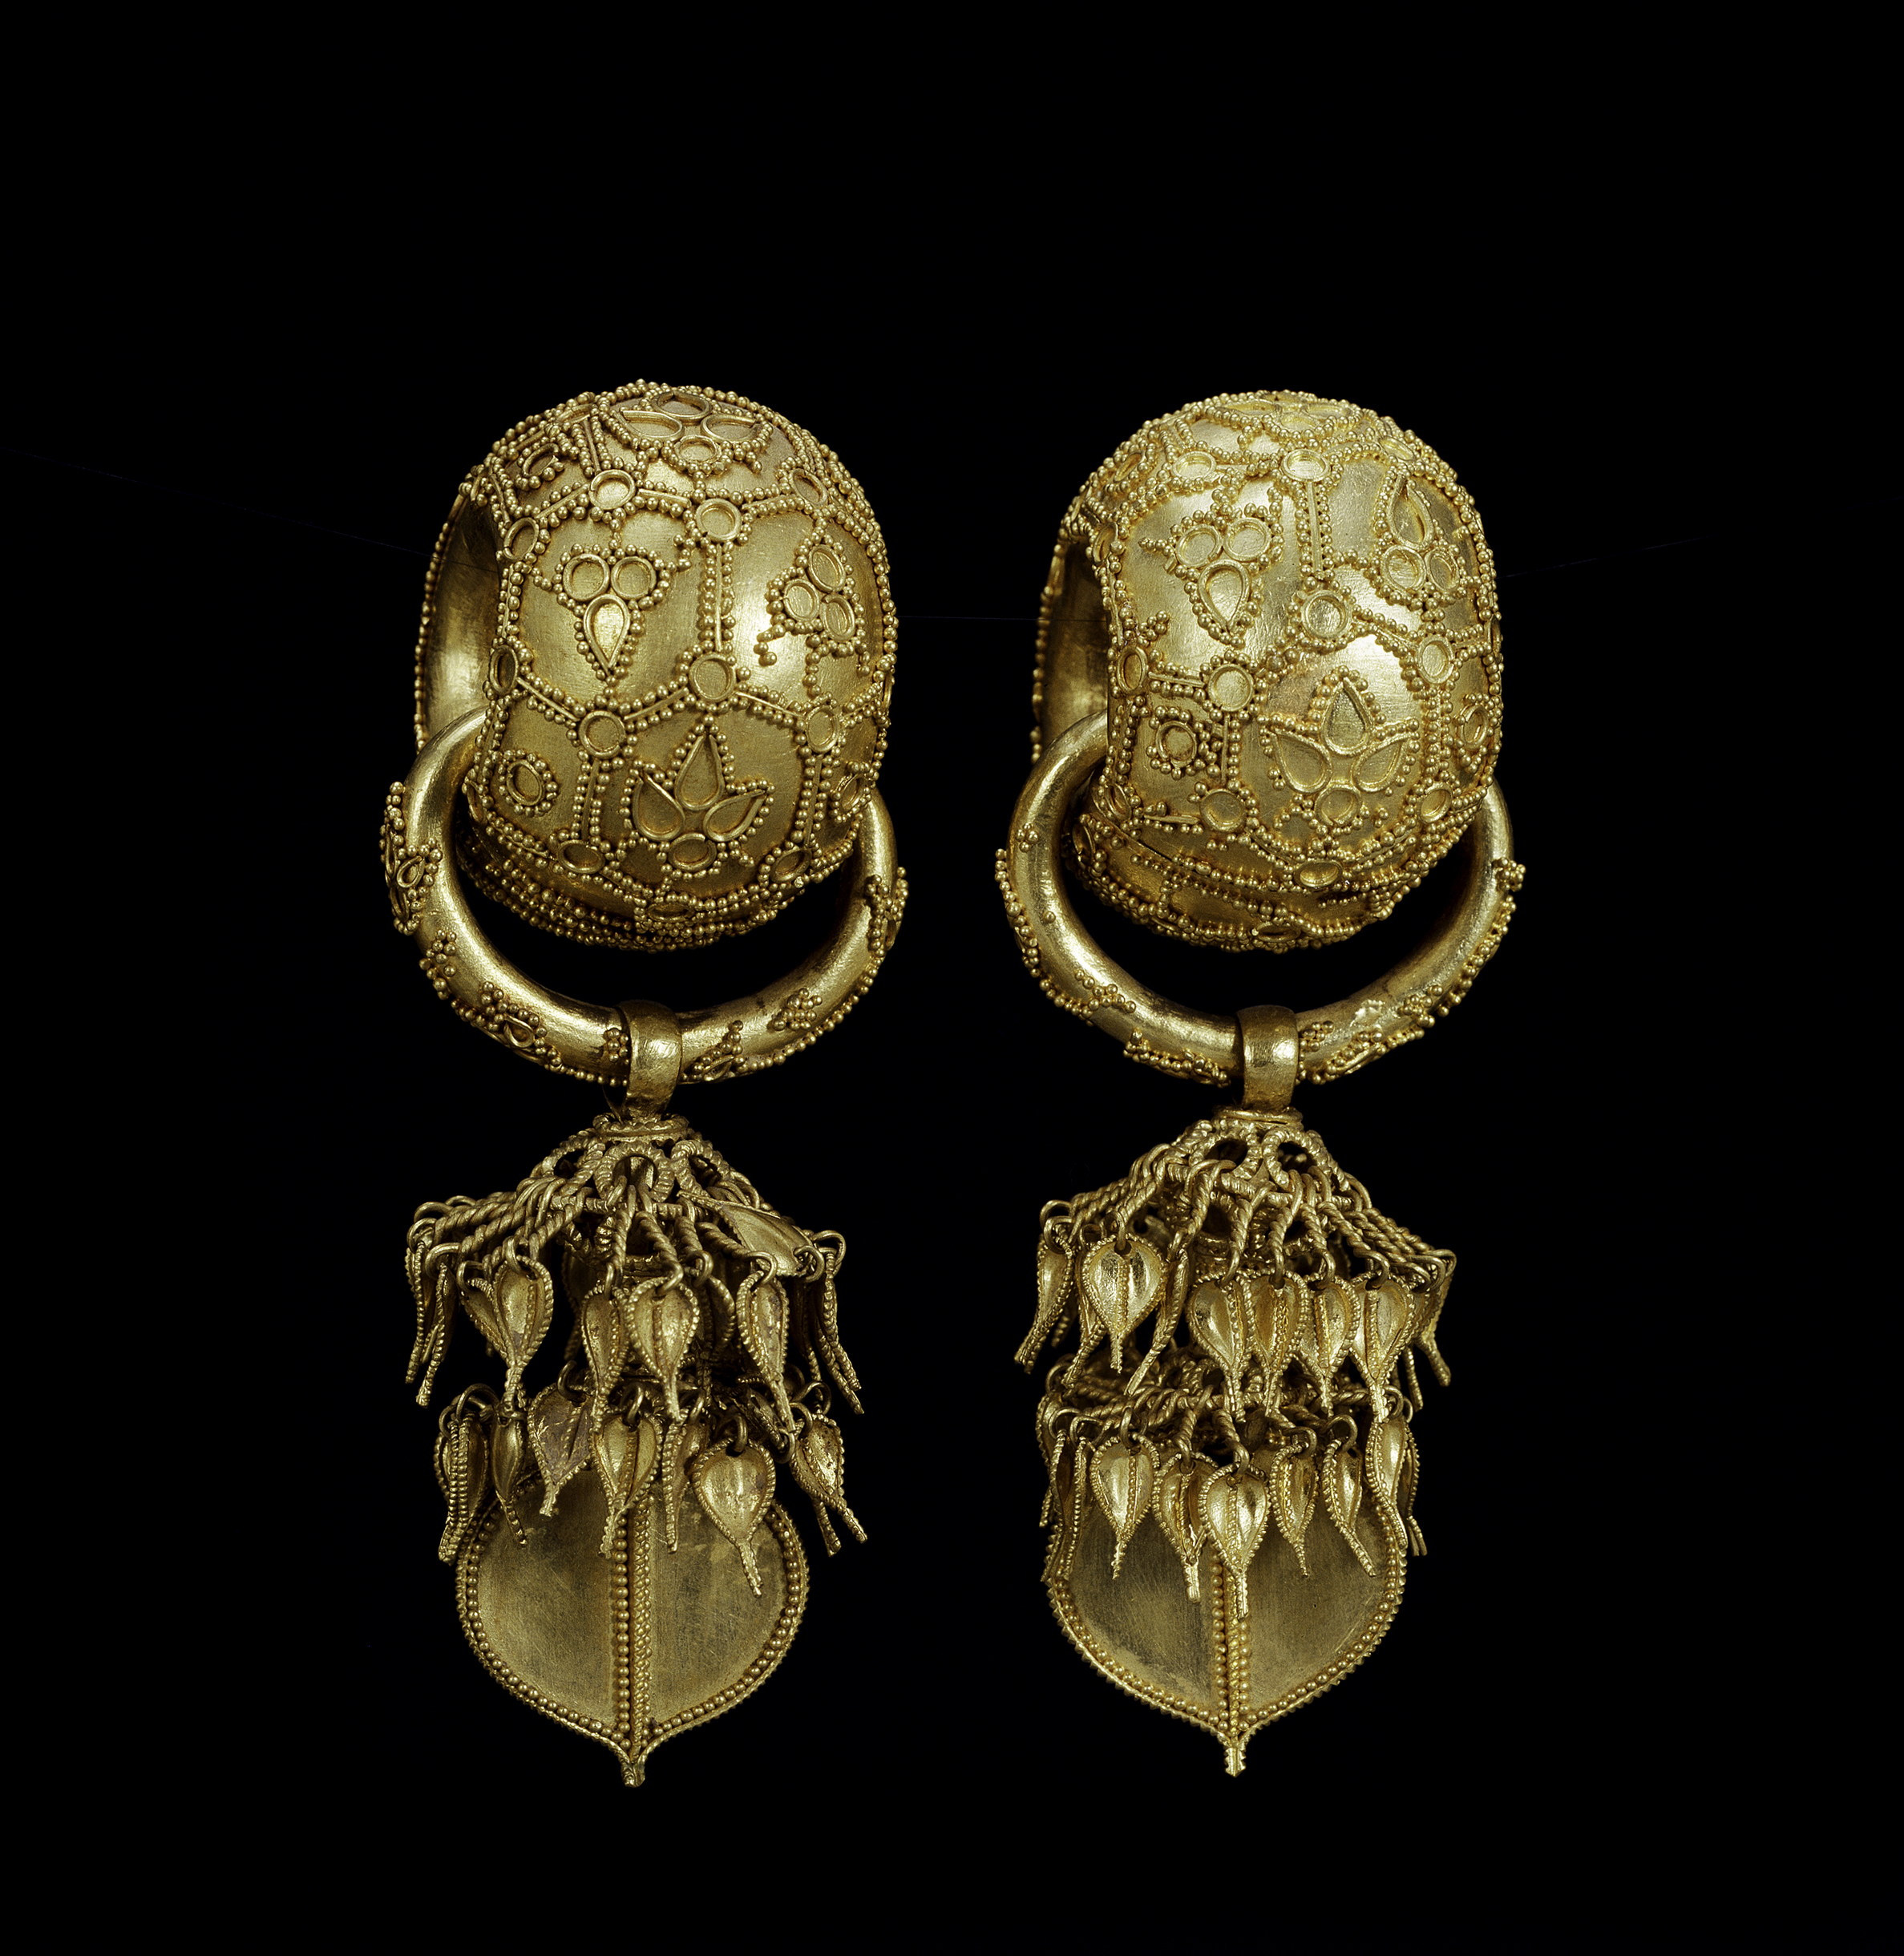 861f5b345 Silla-period Korean earrings (6th century)